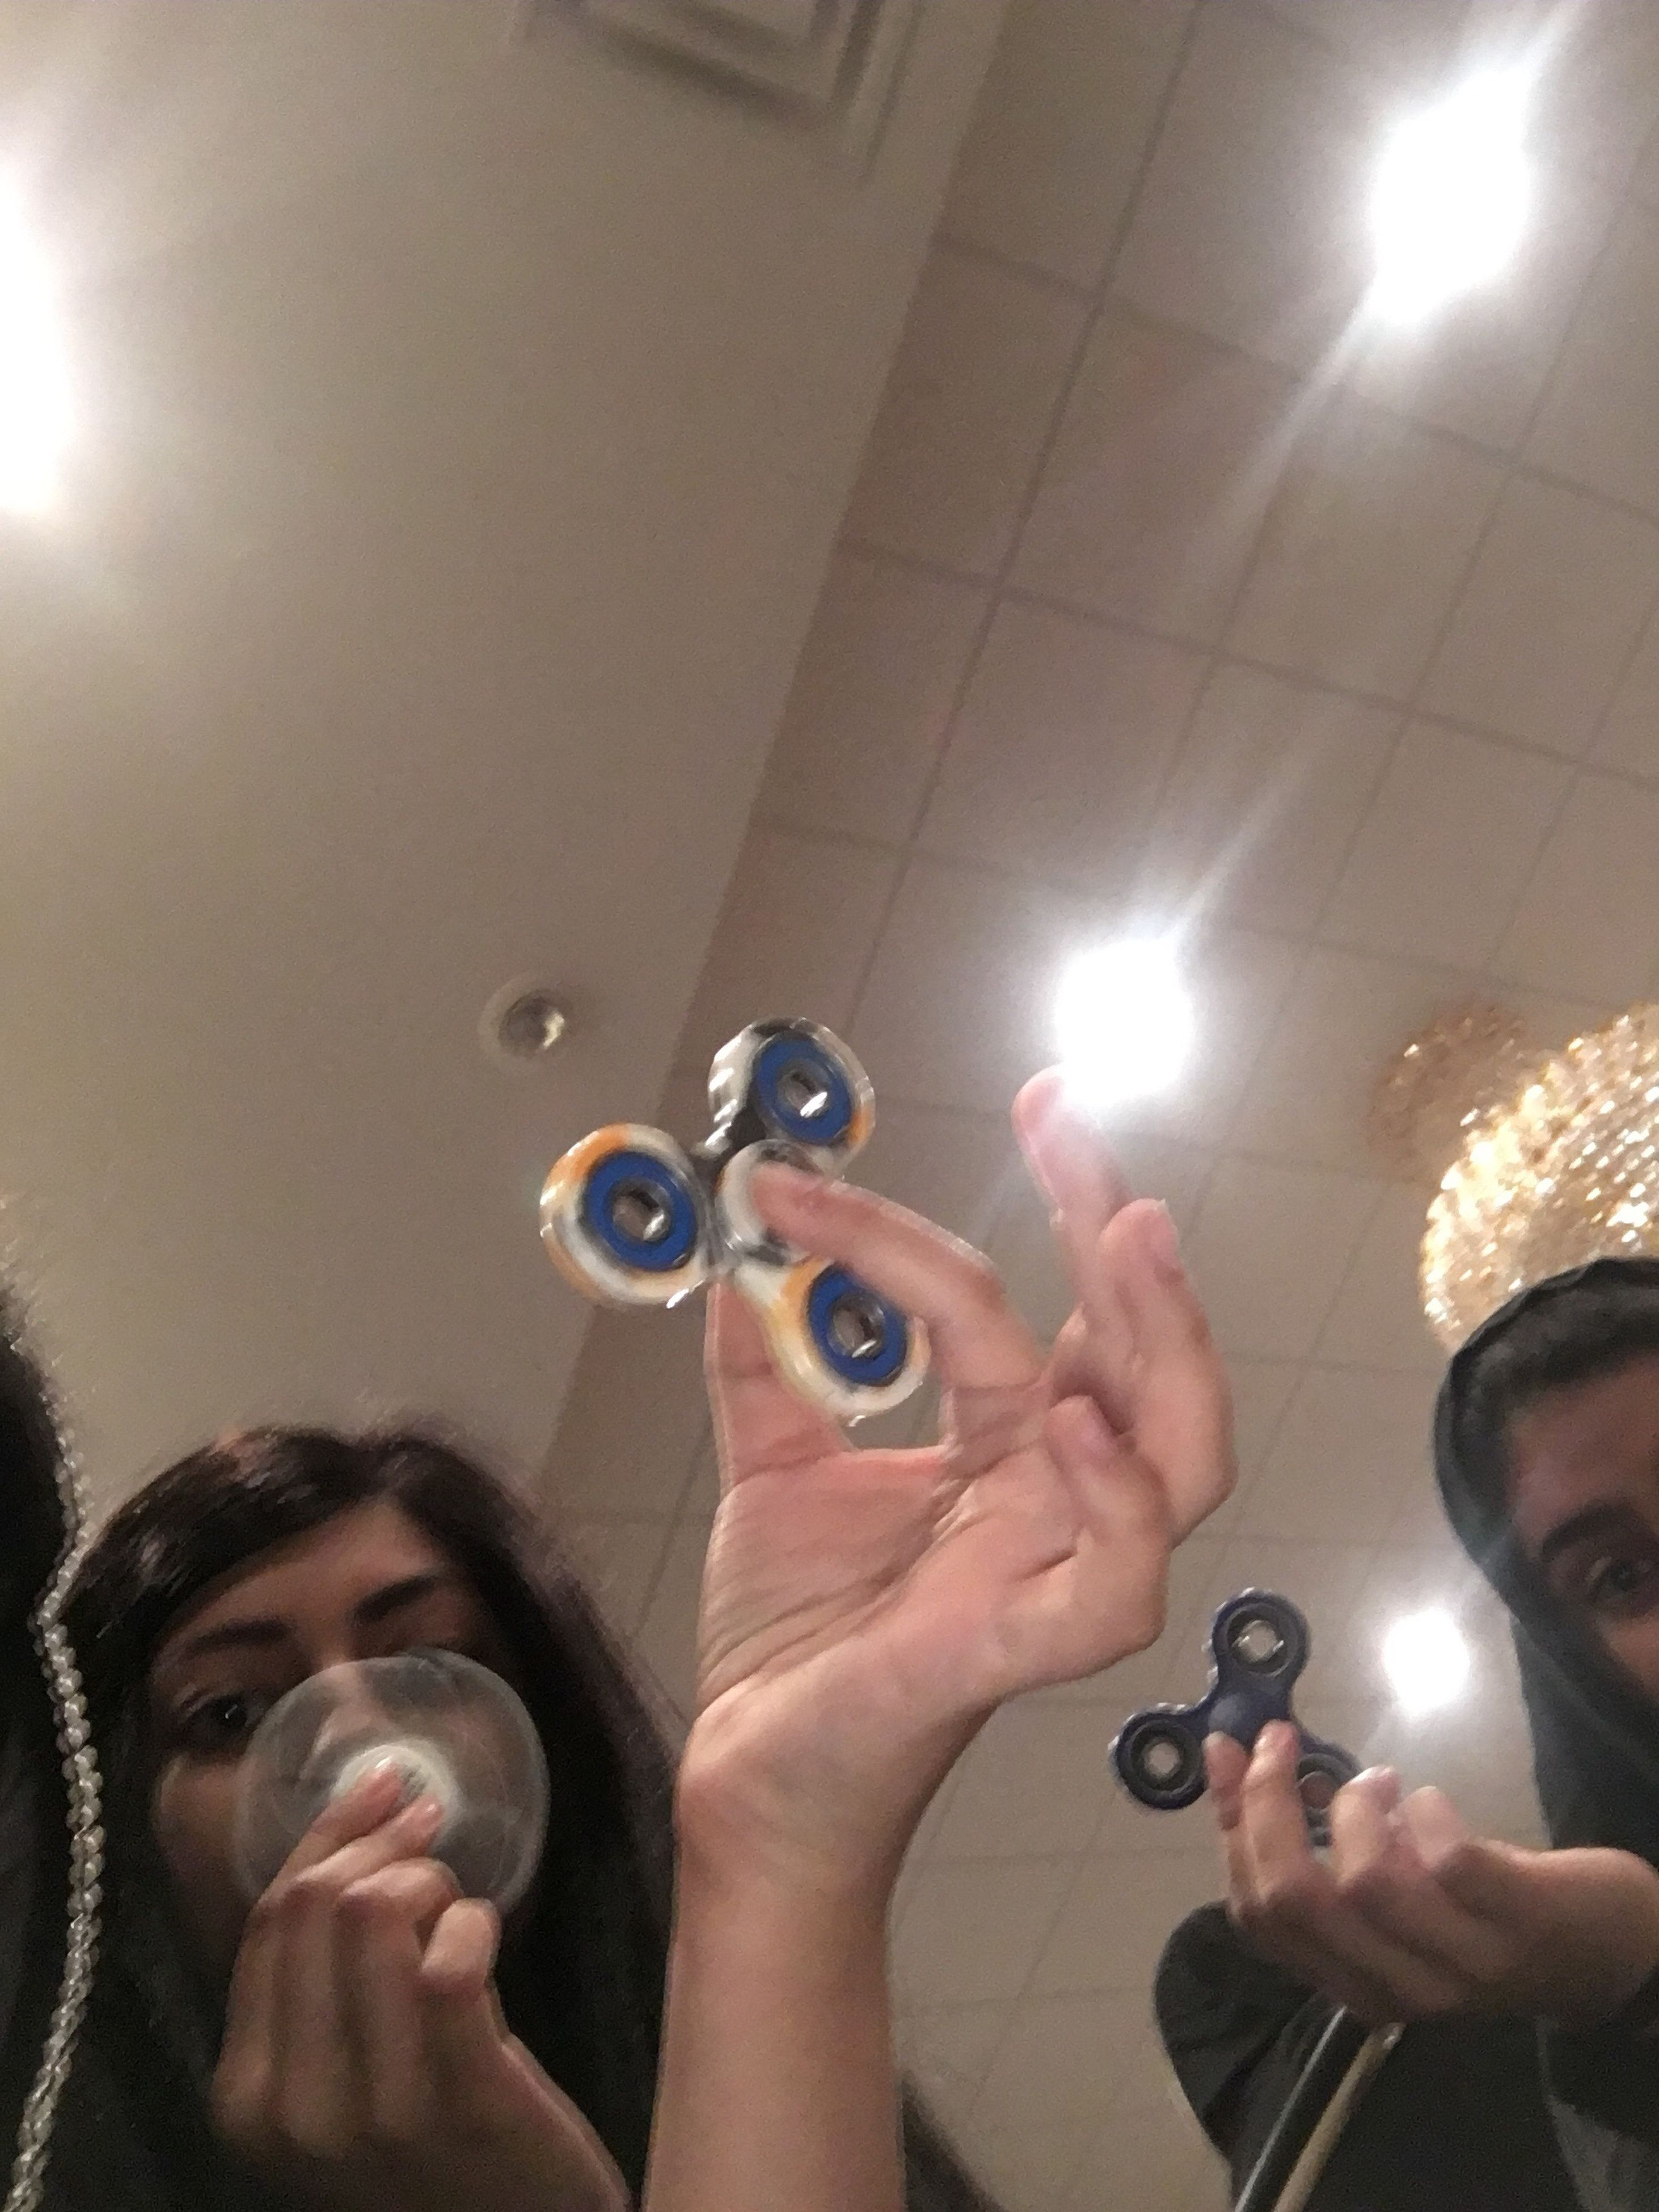 real people, blowing, leisure activity, holding, young adult, young men, bubble wand, indoors, lifestyles, bubble, young women, low angle view, headshot, togetherness, men, technology, day